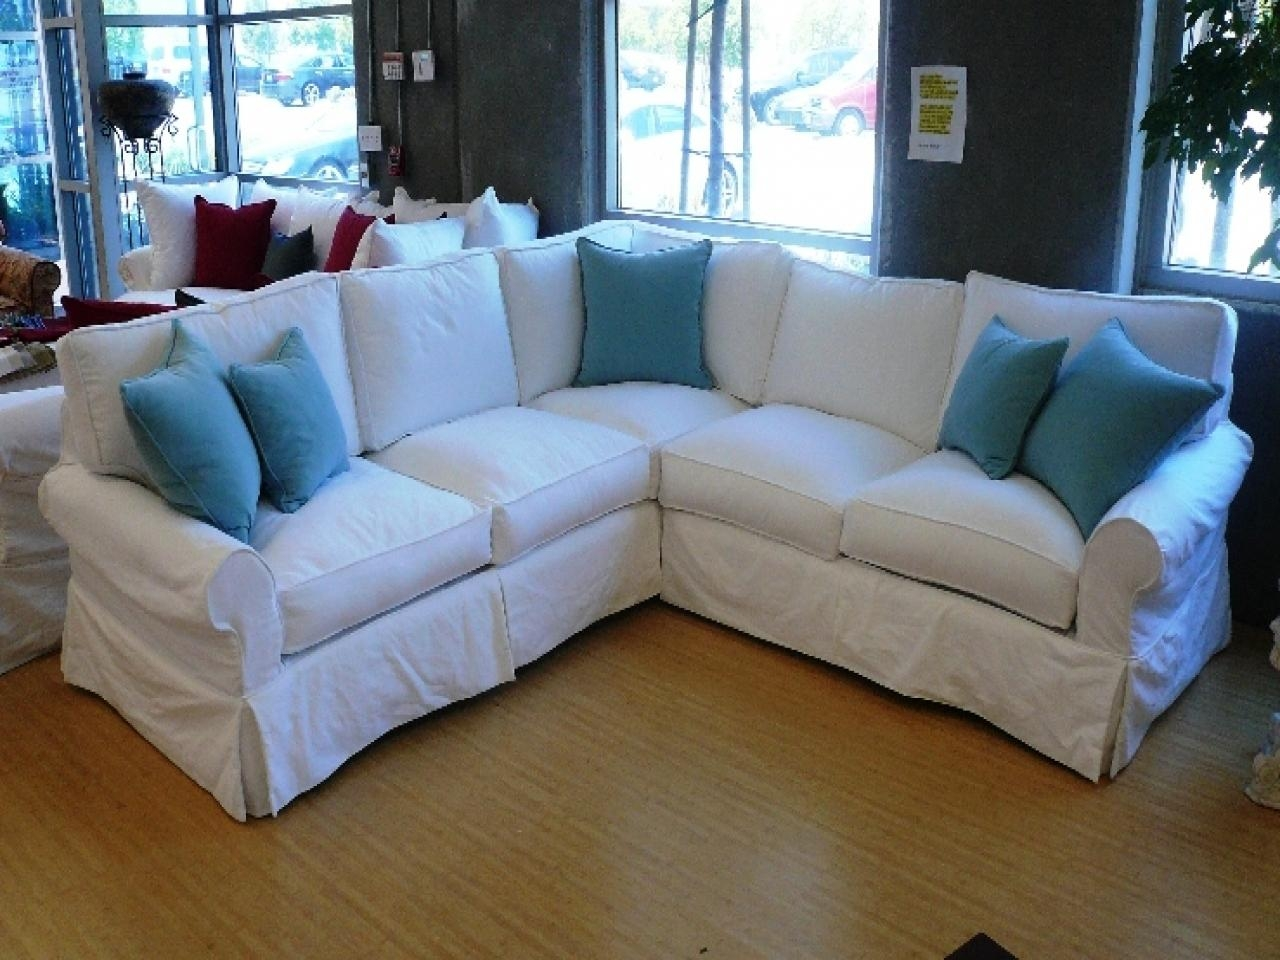 Sofas Center : Sectional Sofa Covers Slipcoverssectional Walmart For Sectional Sofa Covers (View 12 of 20)